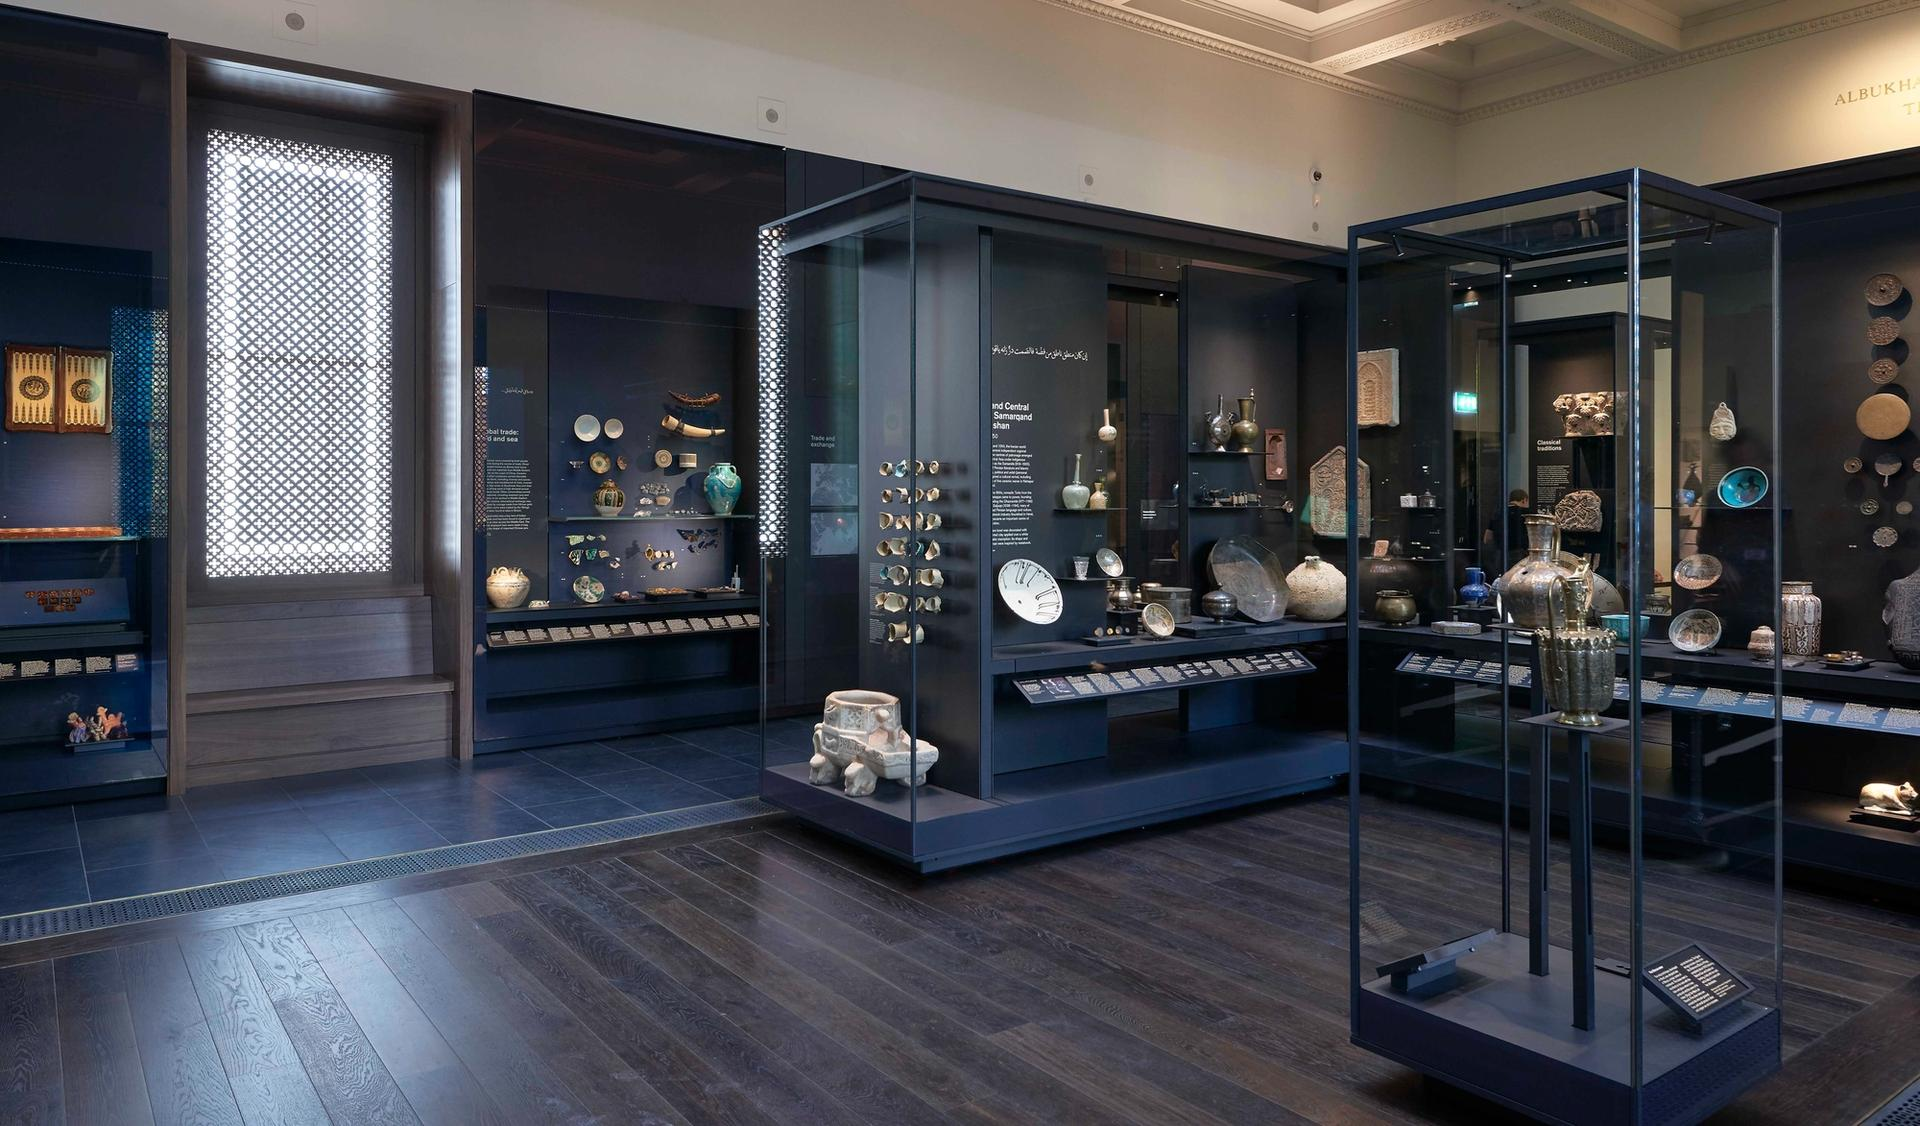 The Albukhary Foundation Gallery of the Islamic World at the British Museum © Trustees of the British Museum